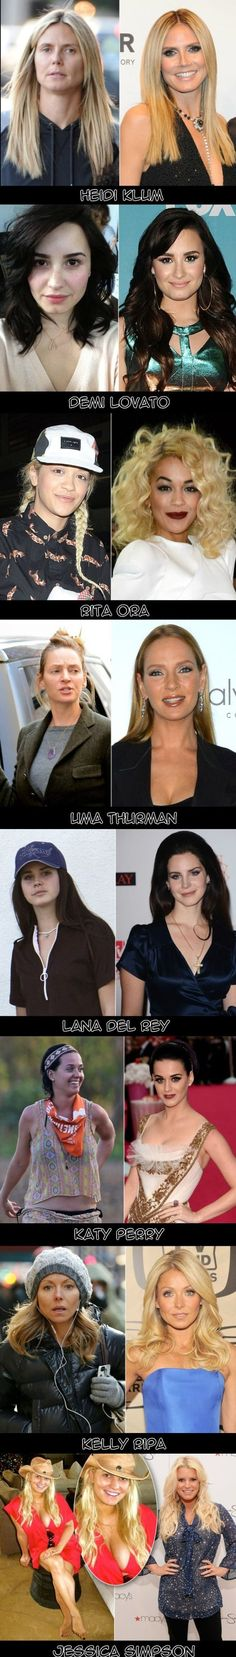 Some Celebrities Without Makeup - www.funny-pictures-blog.com